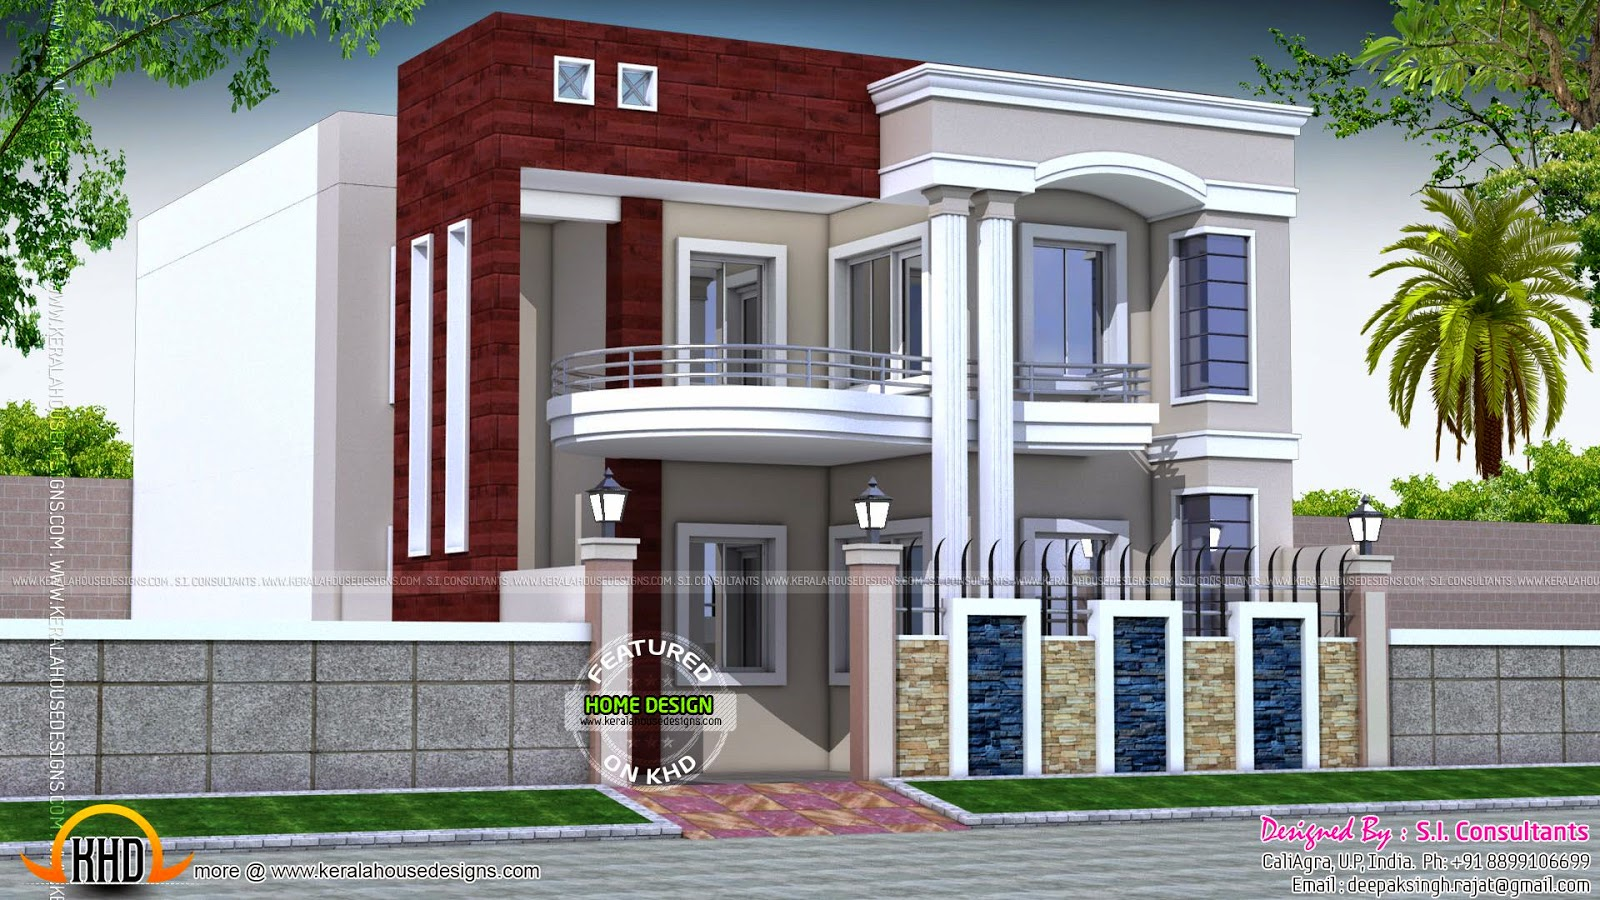 House design in north india kerala home design and floor for Modern small home designs india